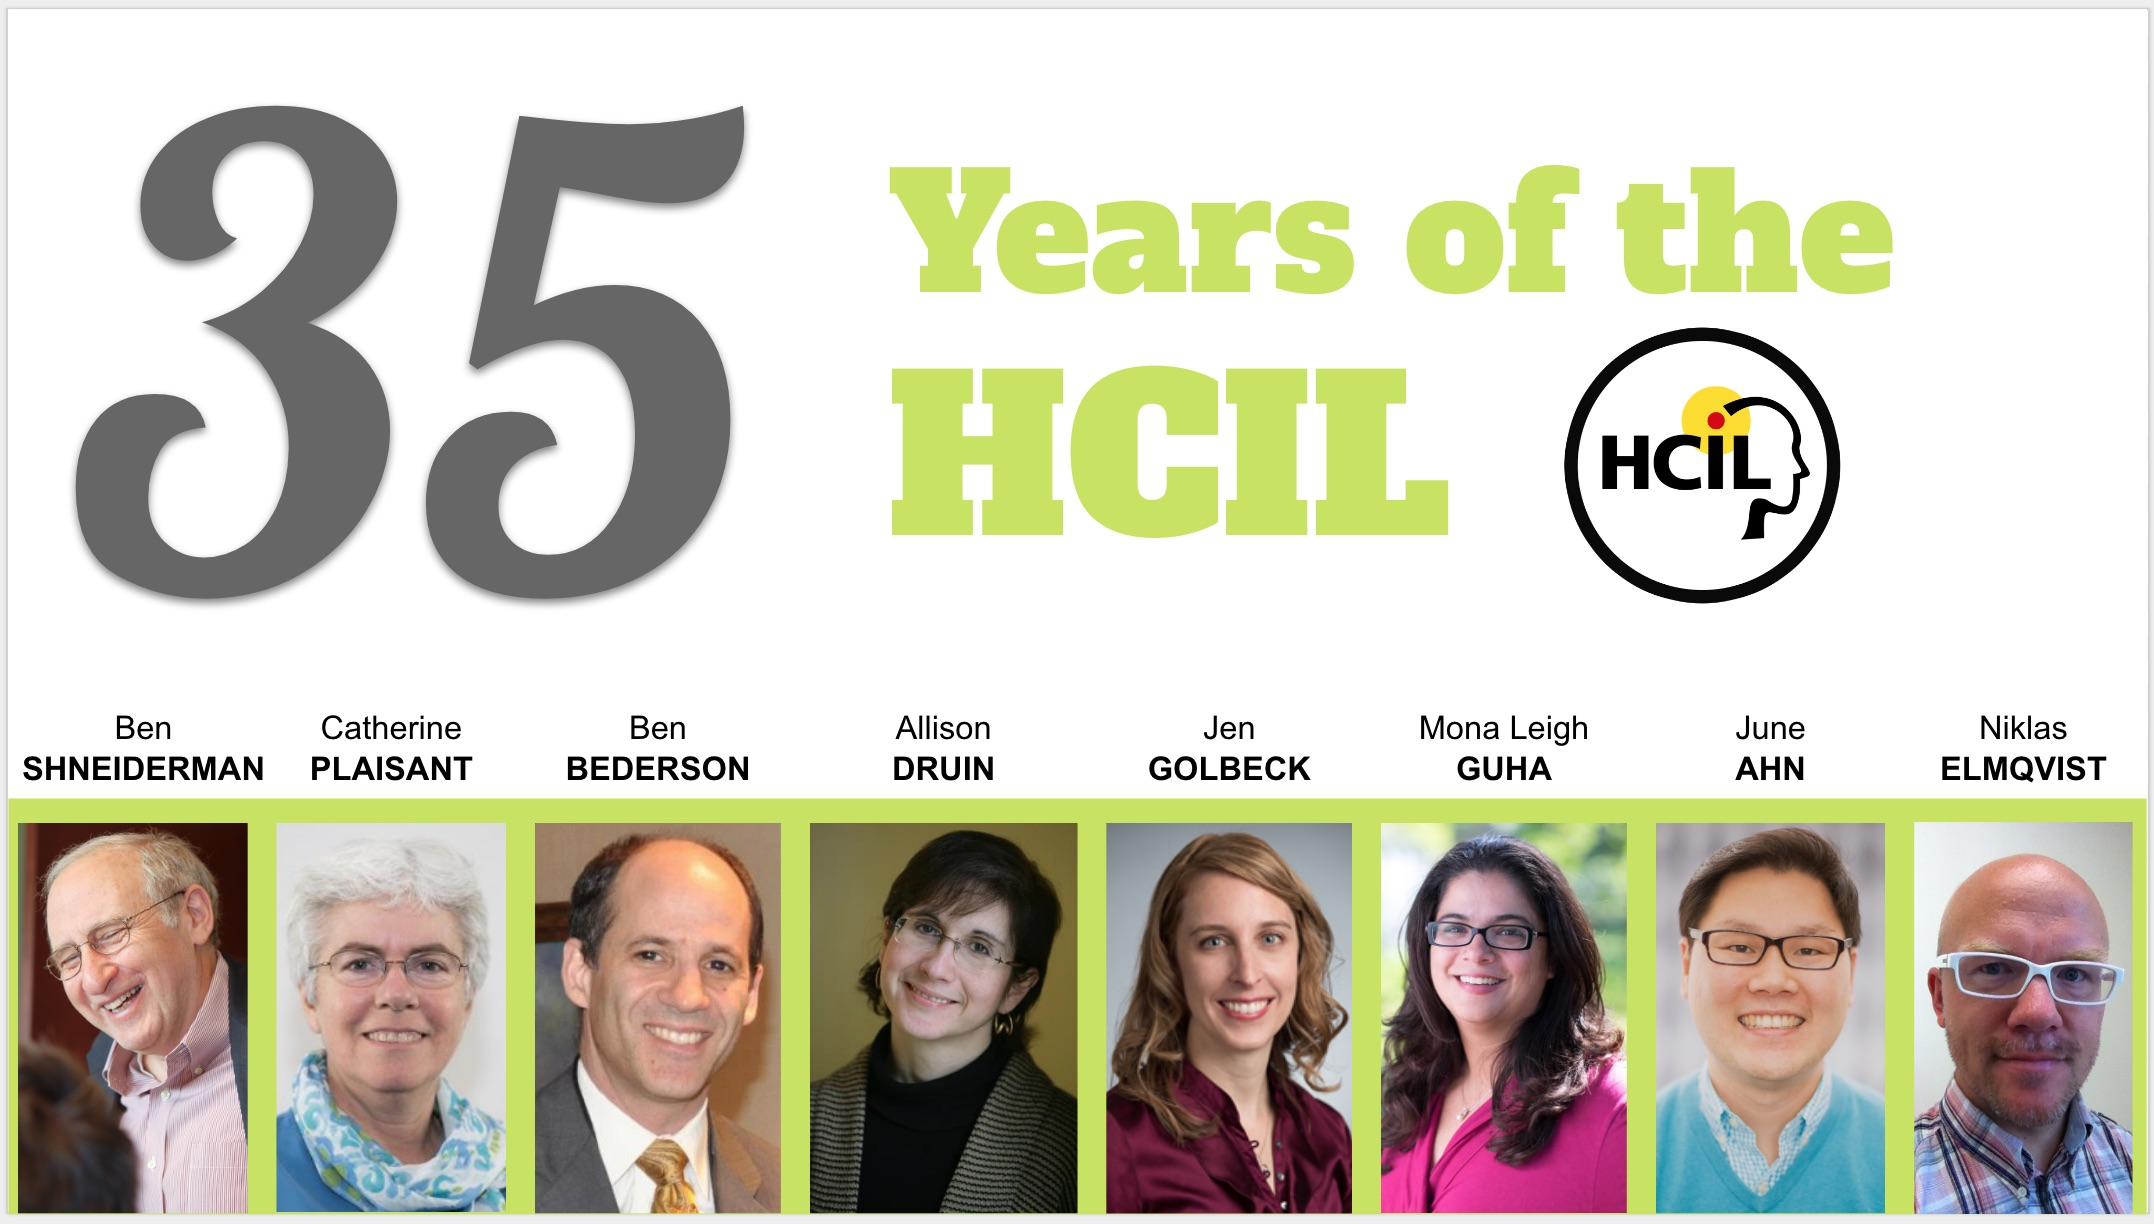 35 years of HCIL, and headshots of prominent faculty at HCIL